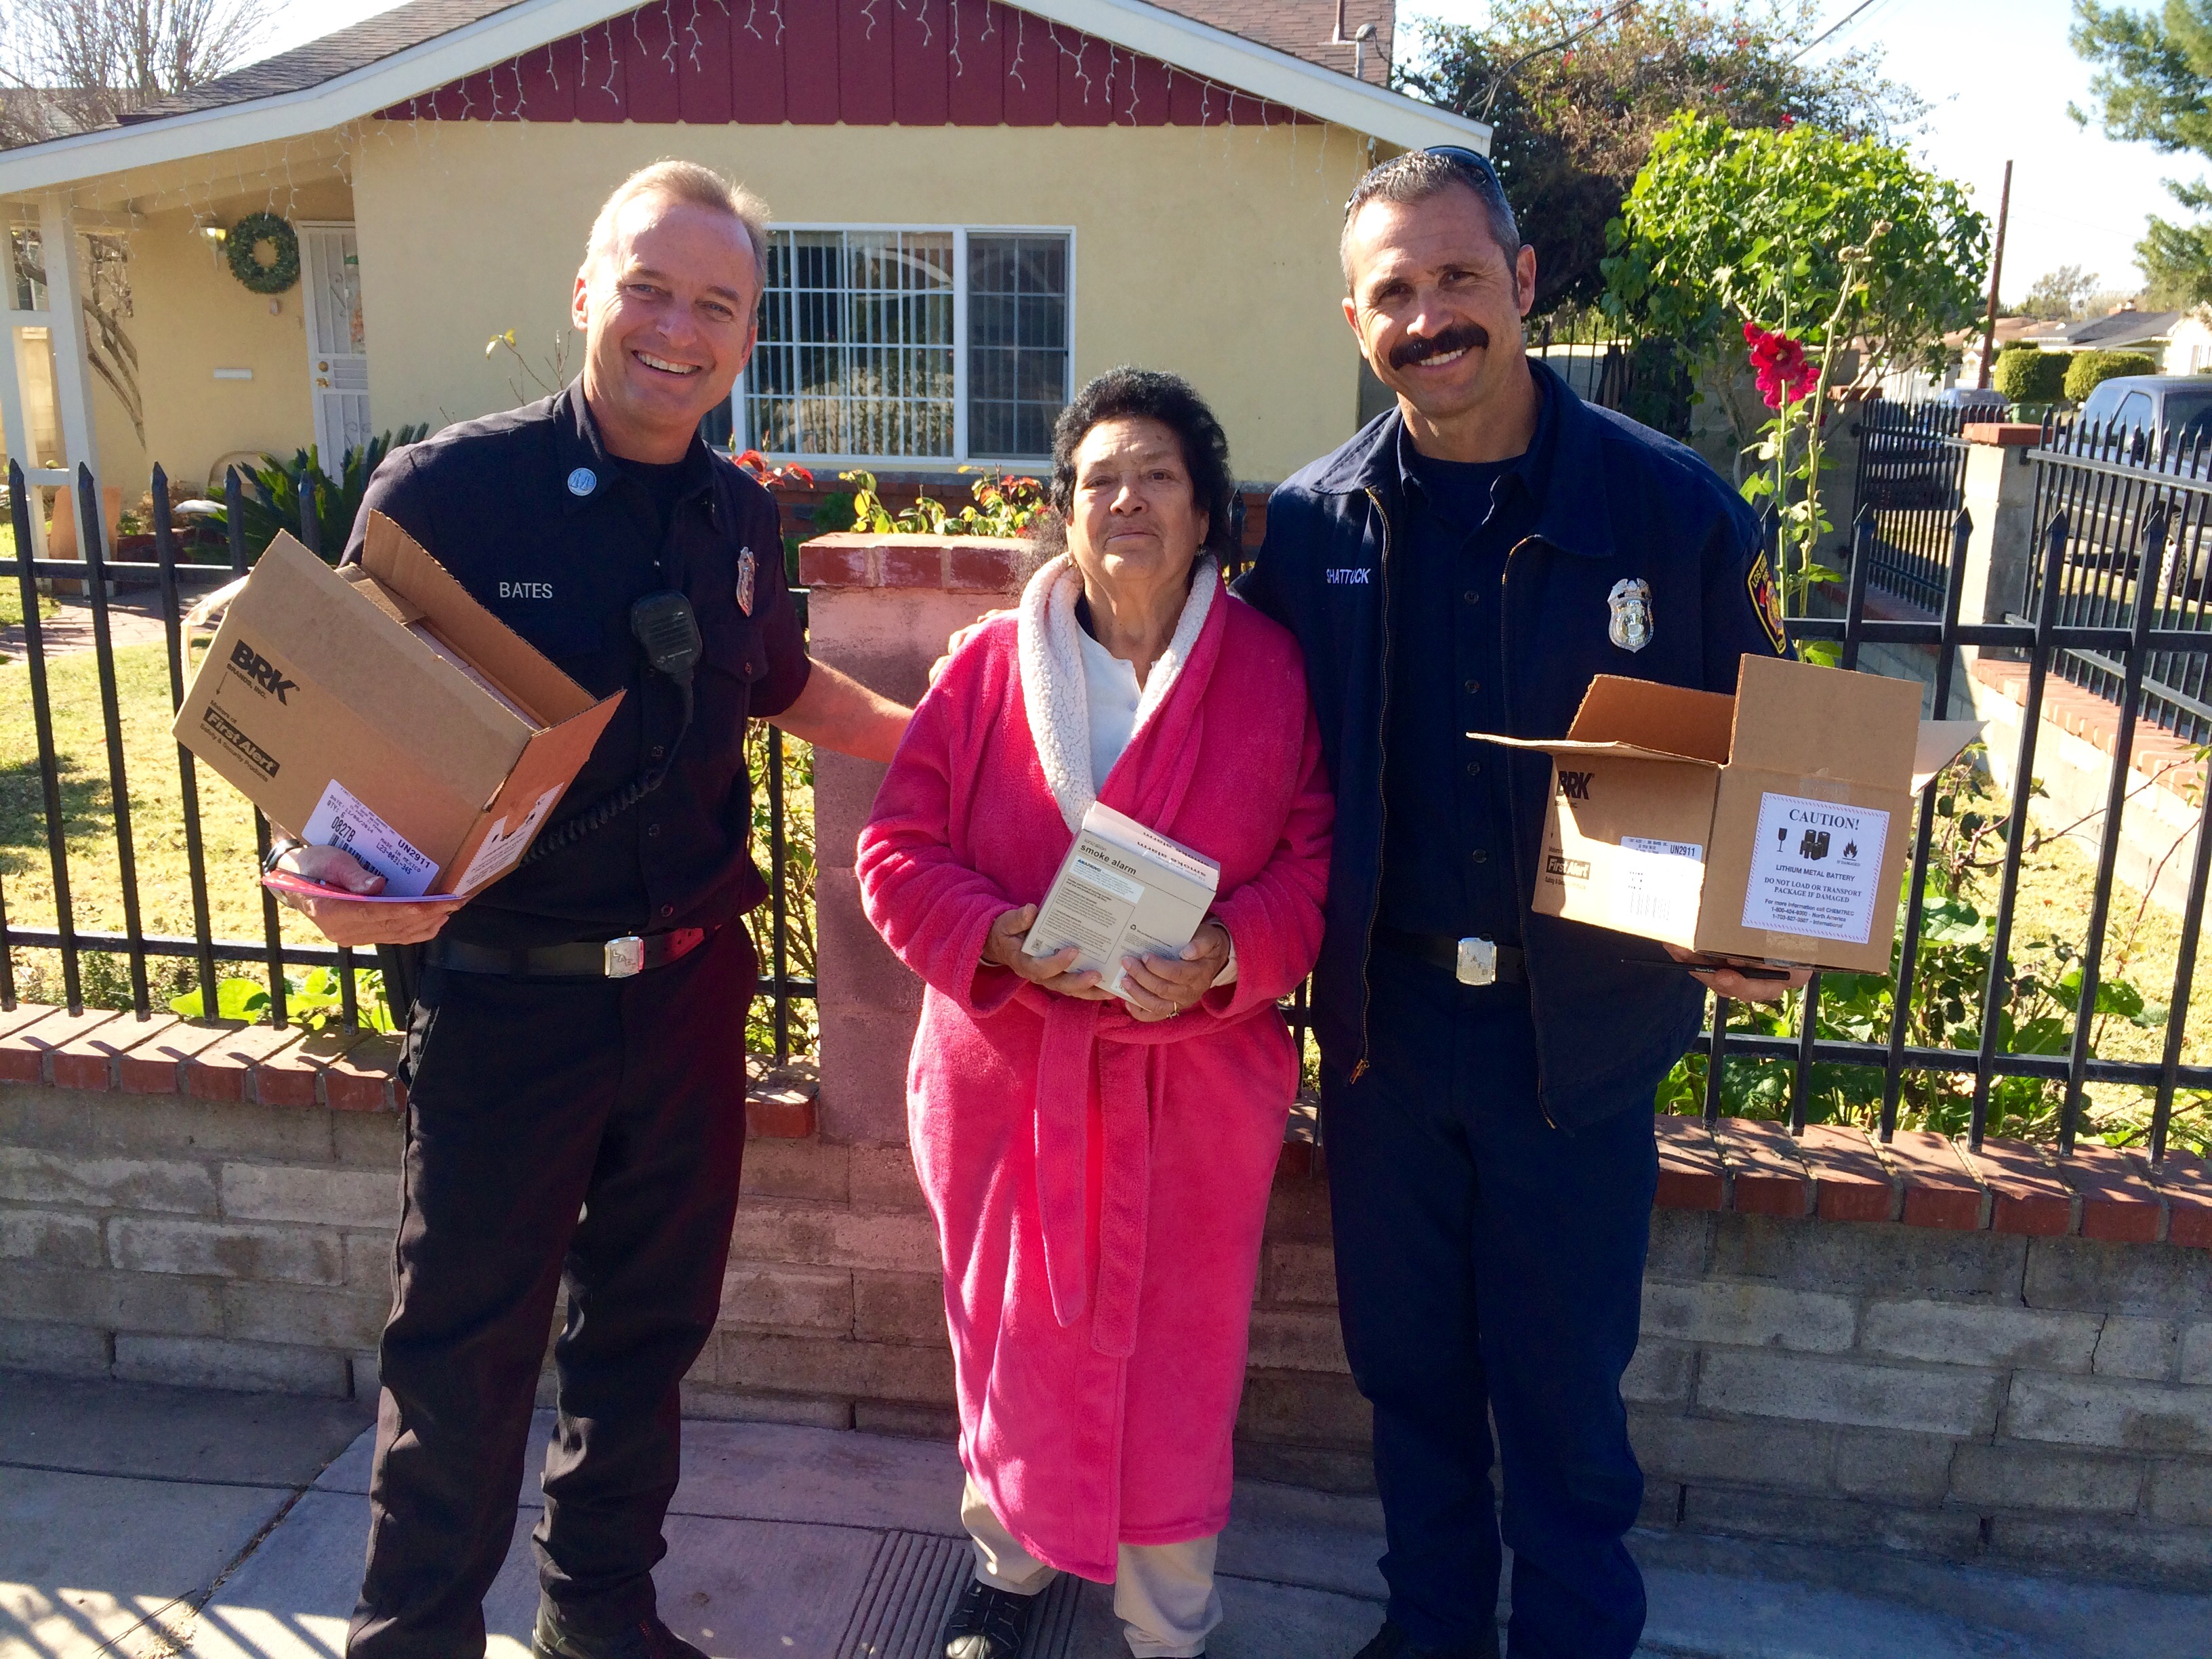 2 firefighters smiling while providing free smoke alarms to a resident.